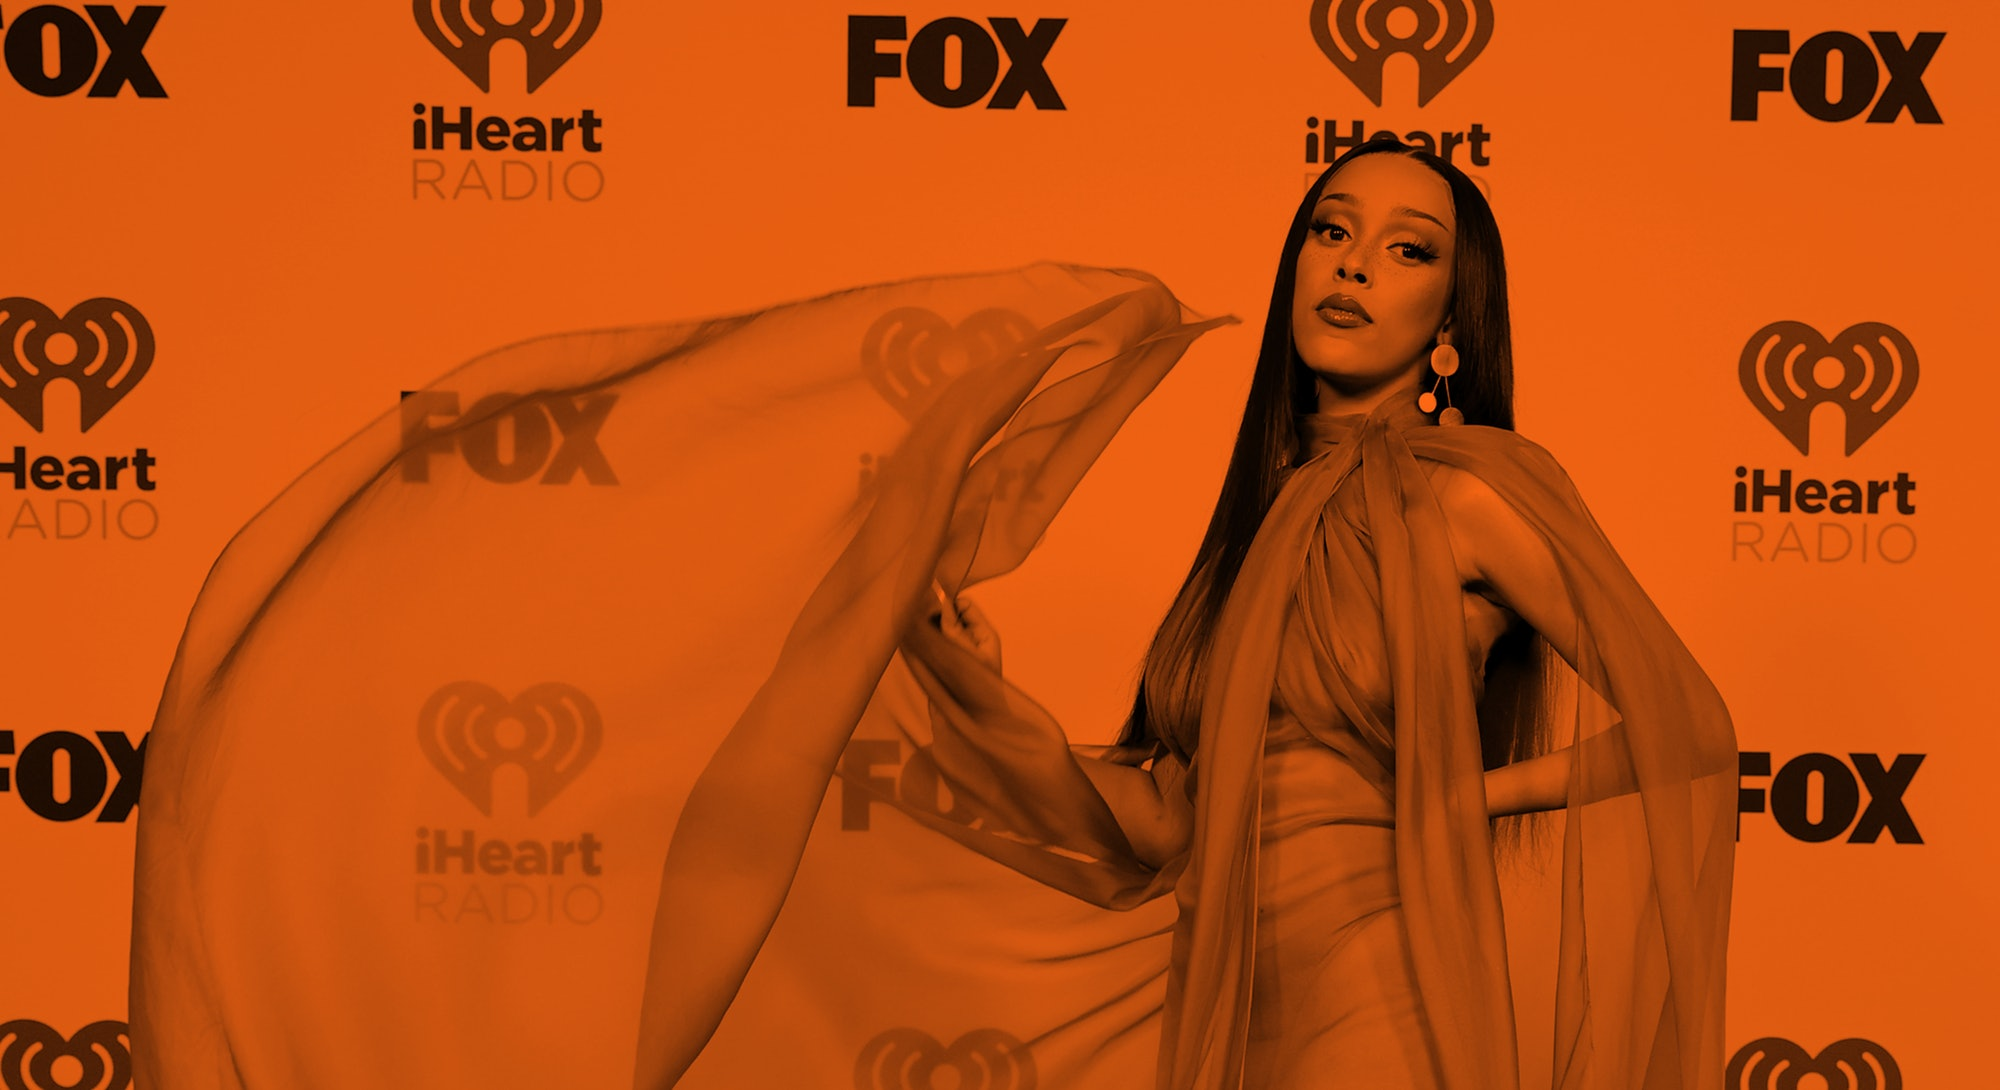 LOS ANGELES, CALIFORNIA - MAY 27: (EDITORIAL USE ONLY) Doja Cat attends the 2021 iHeartRadio Music A...